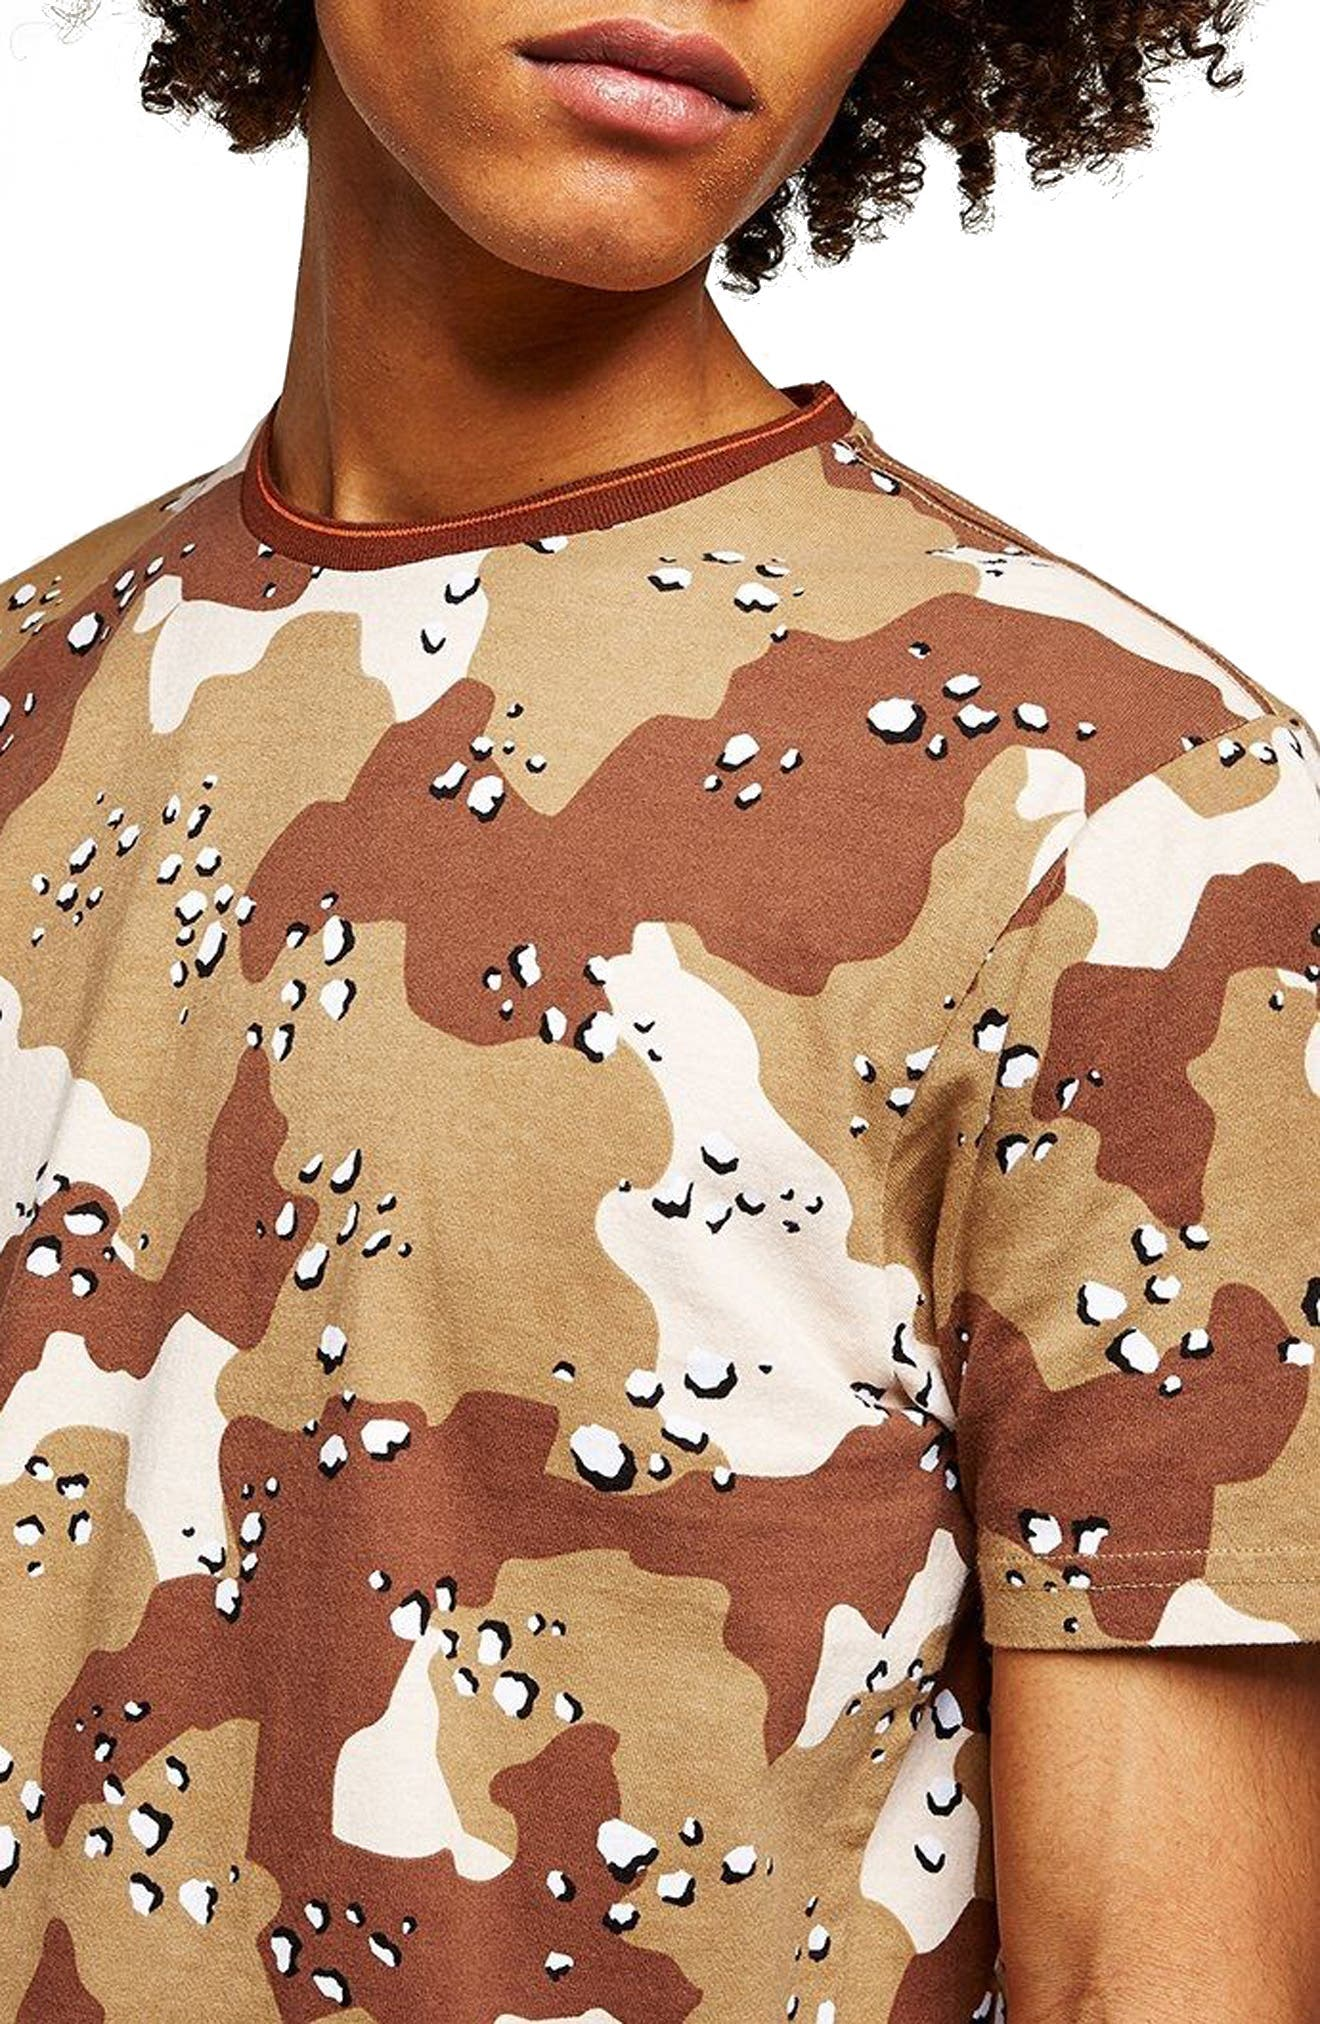 Camouflage Graphic T-Shirt,                             Main thumbnail 1, color,                             250